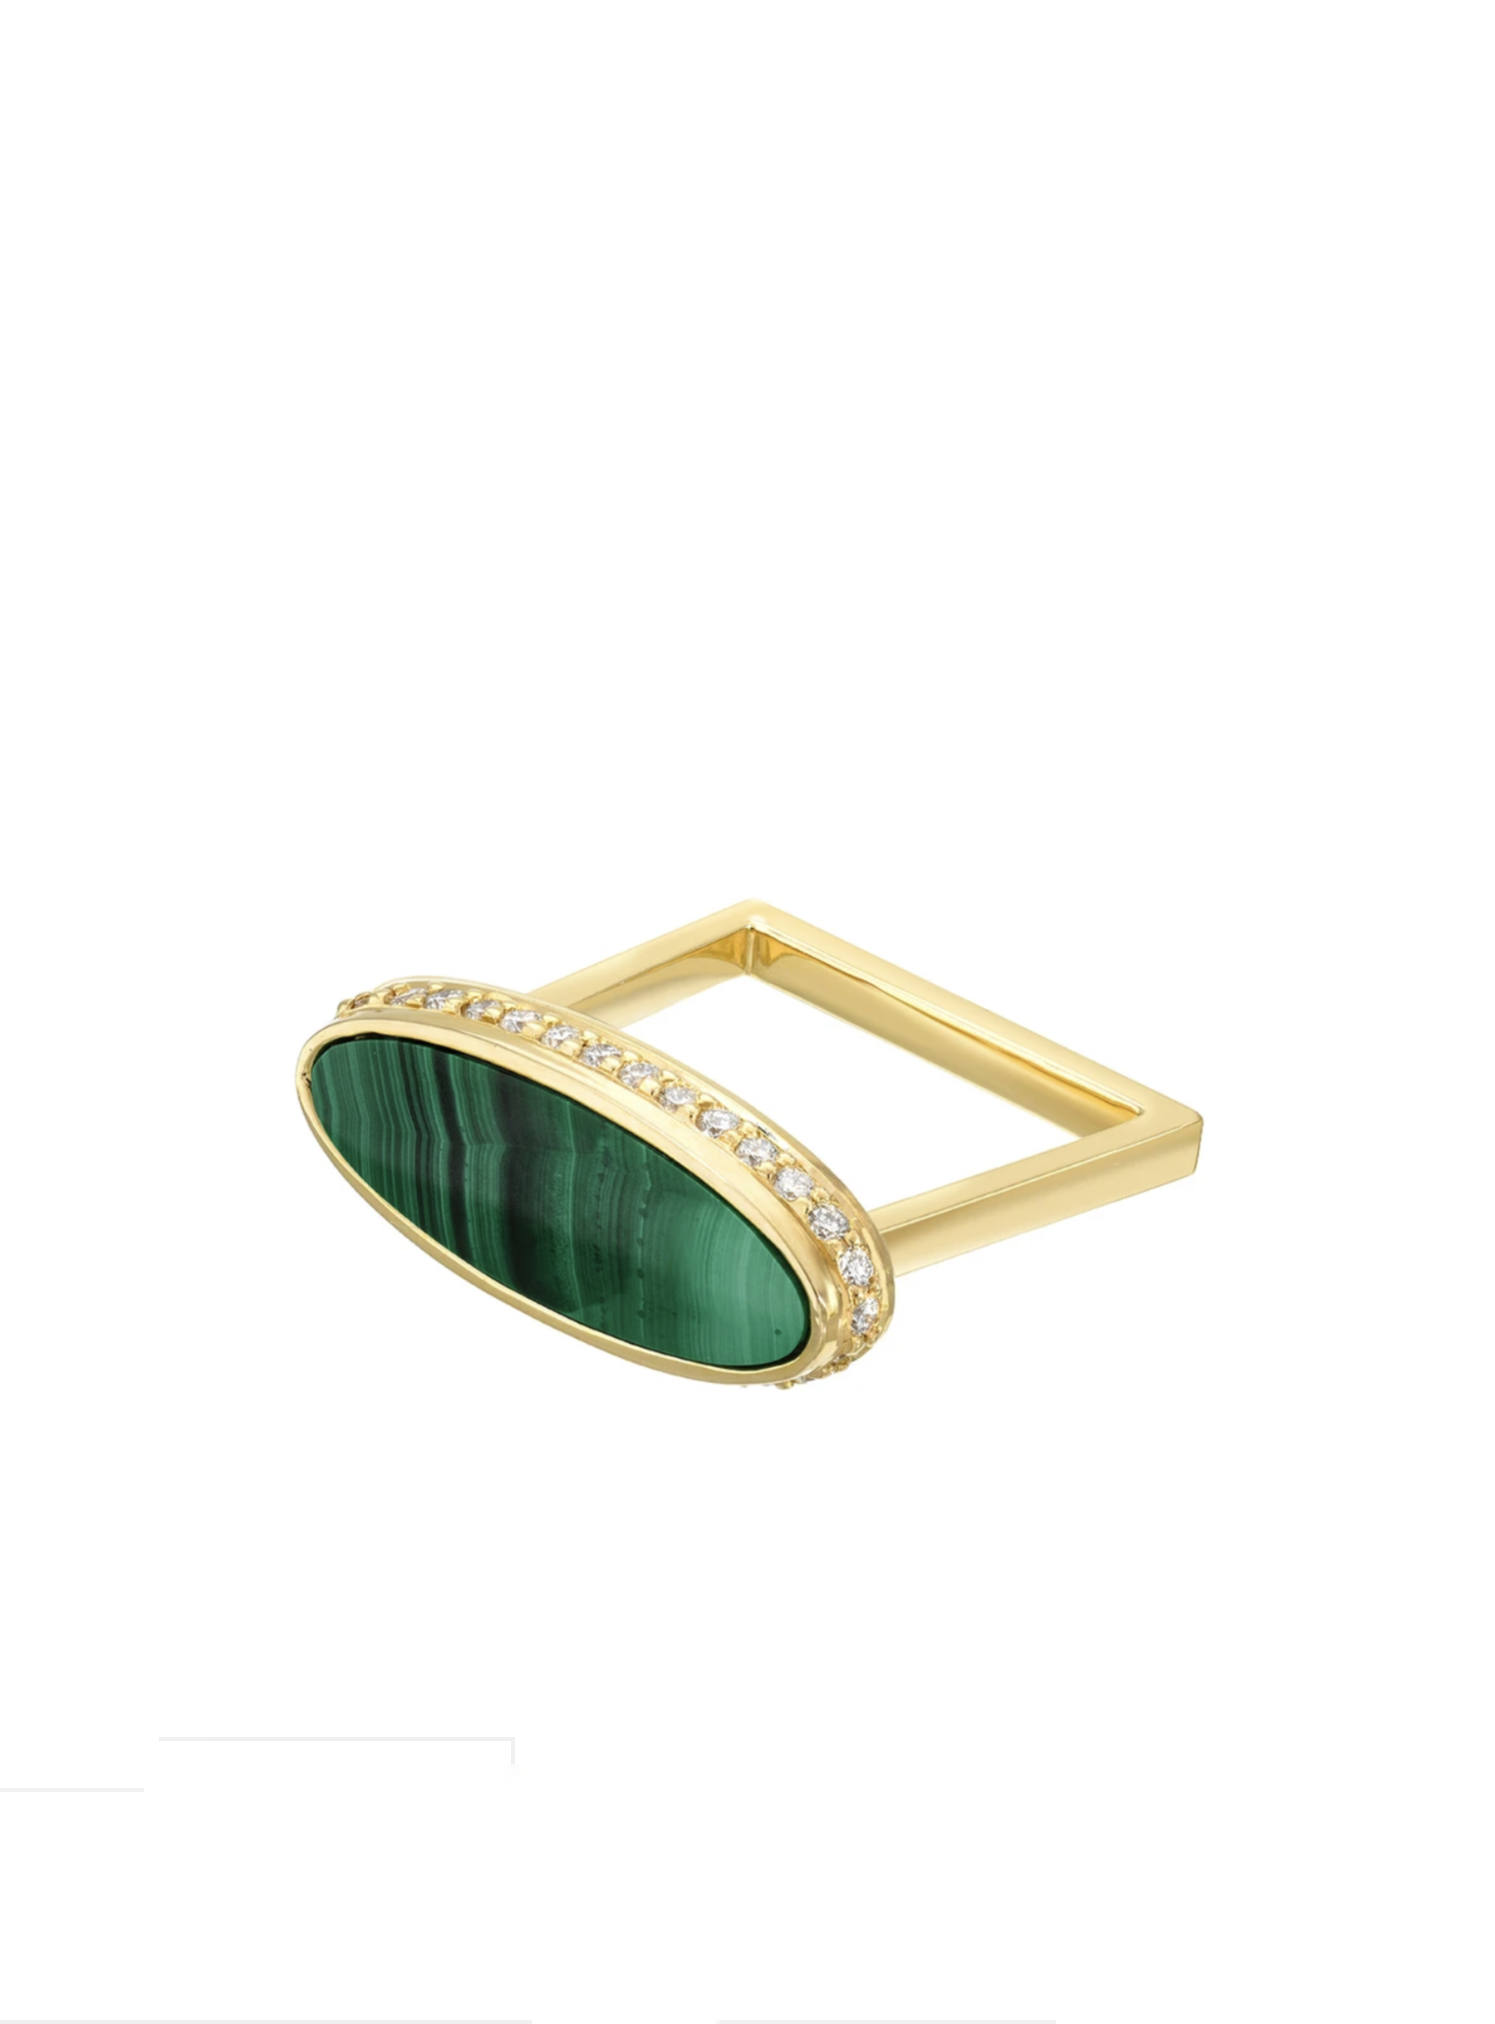 Malachite Halo Signet Ring